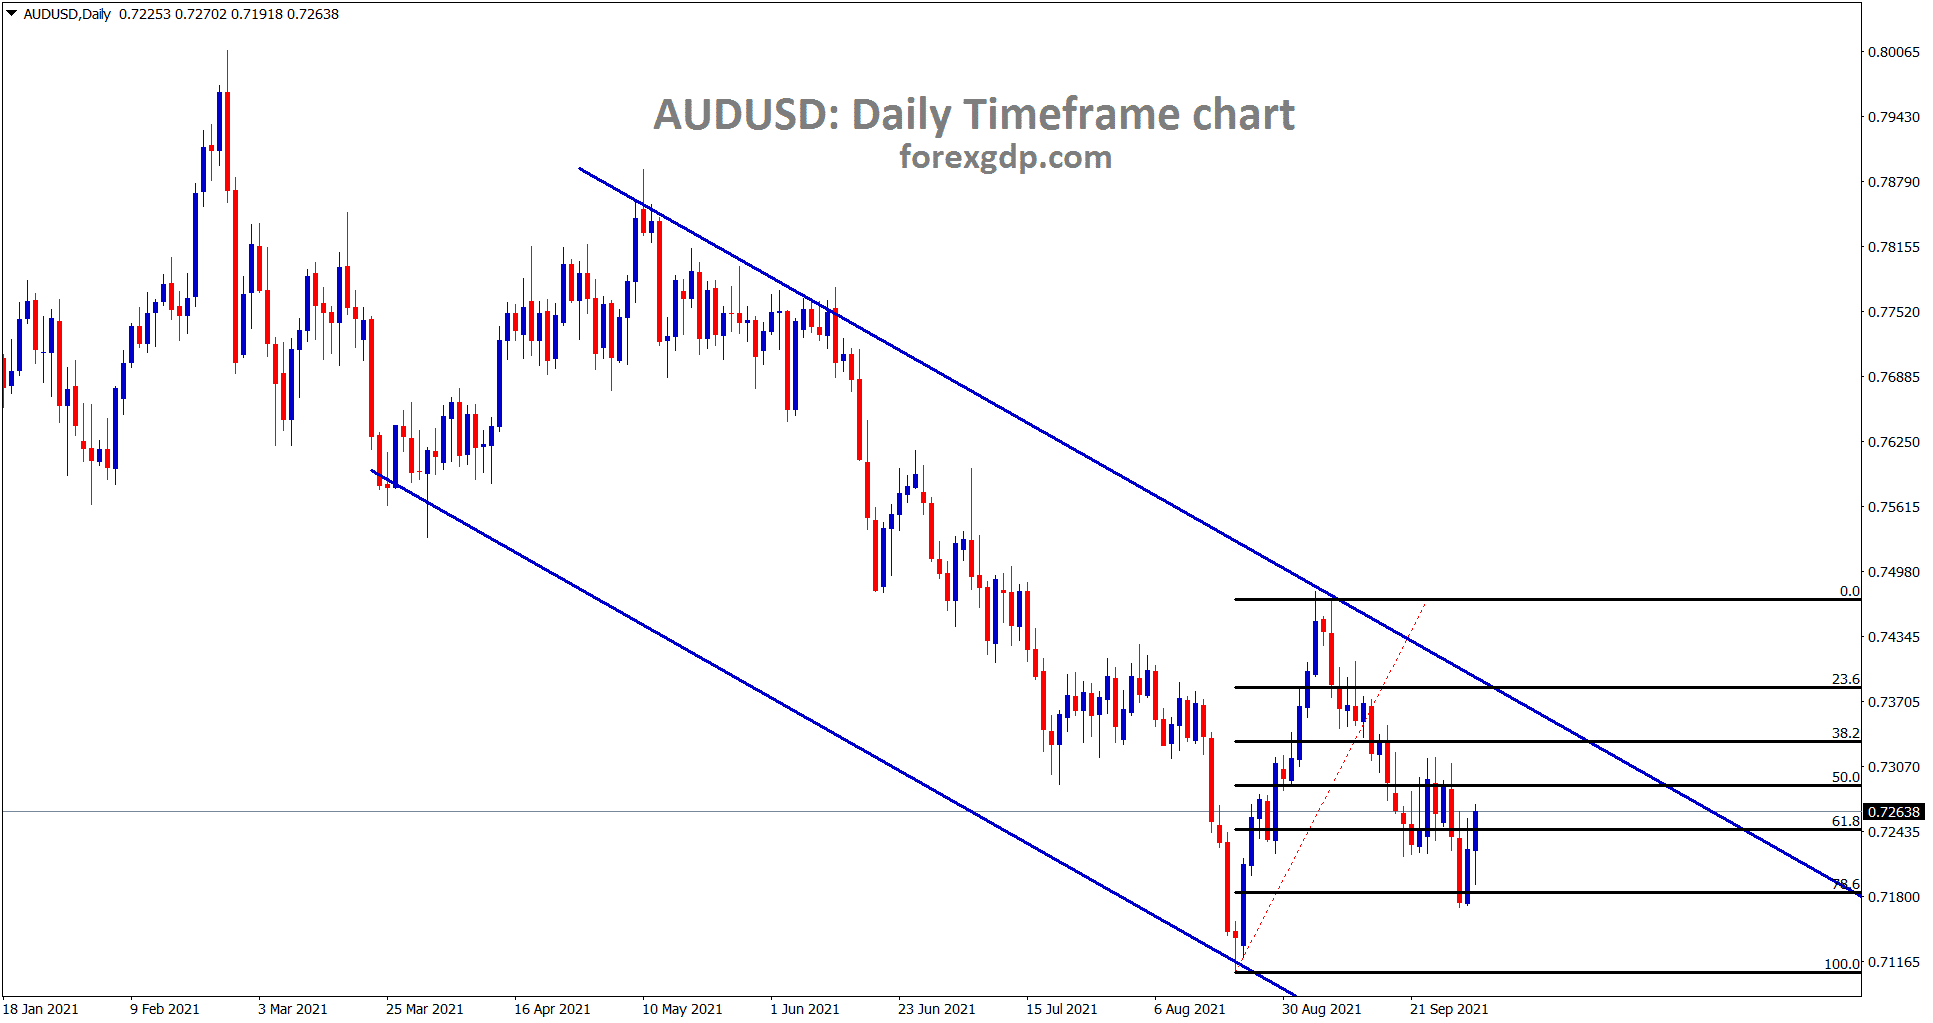 AUDUSD is moving in a descending channel and it has made a retracement of 78